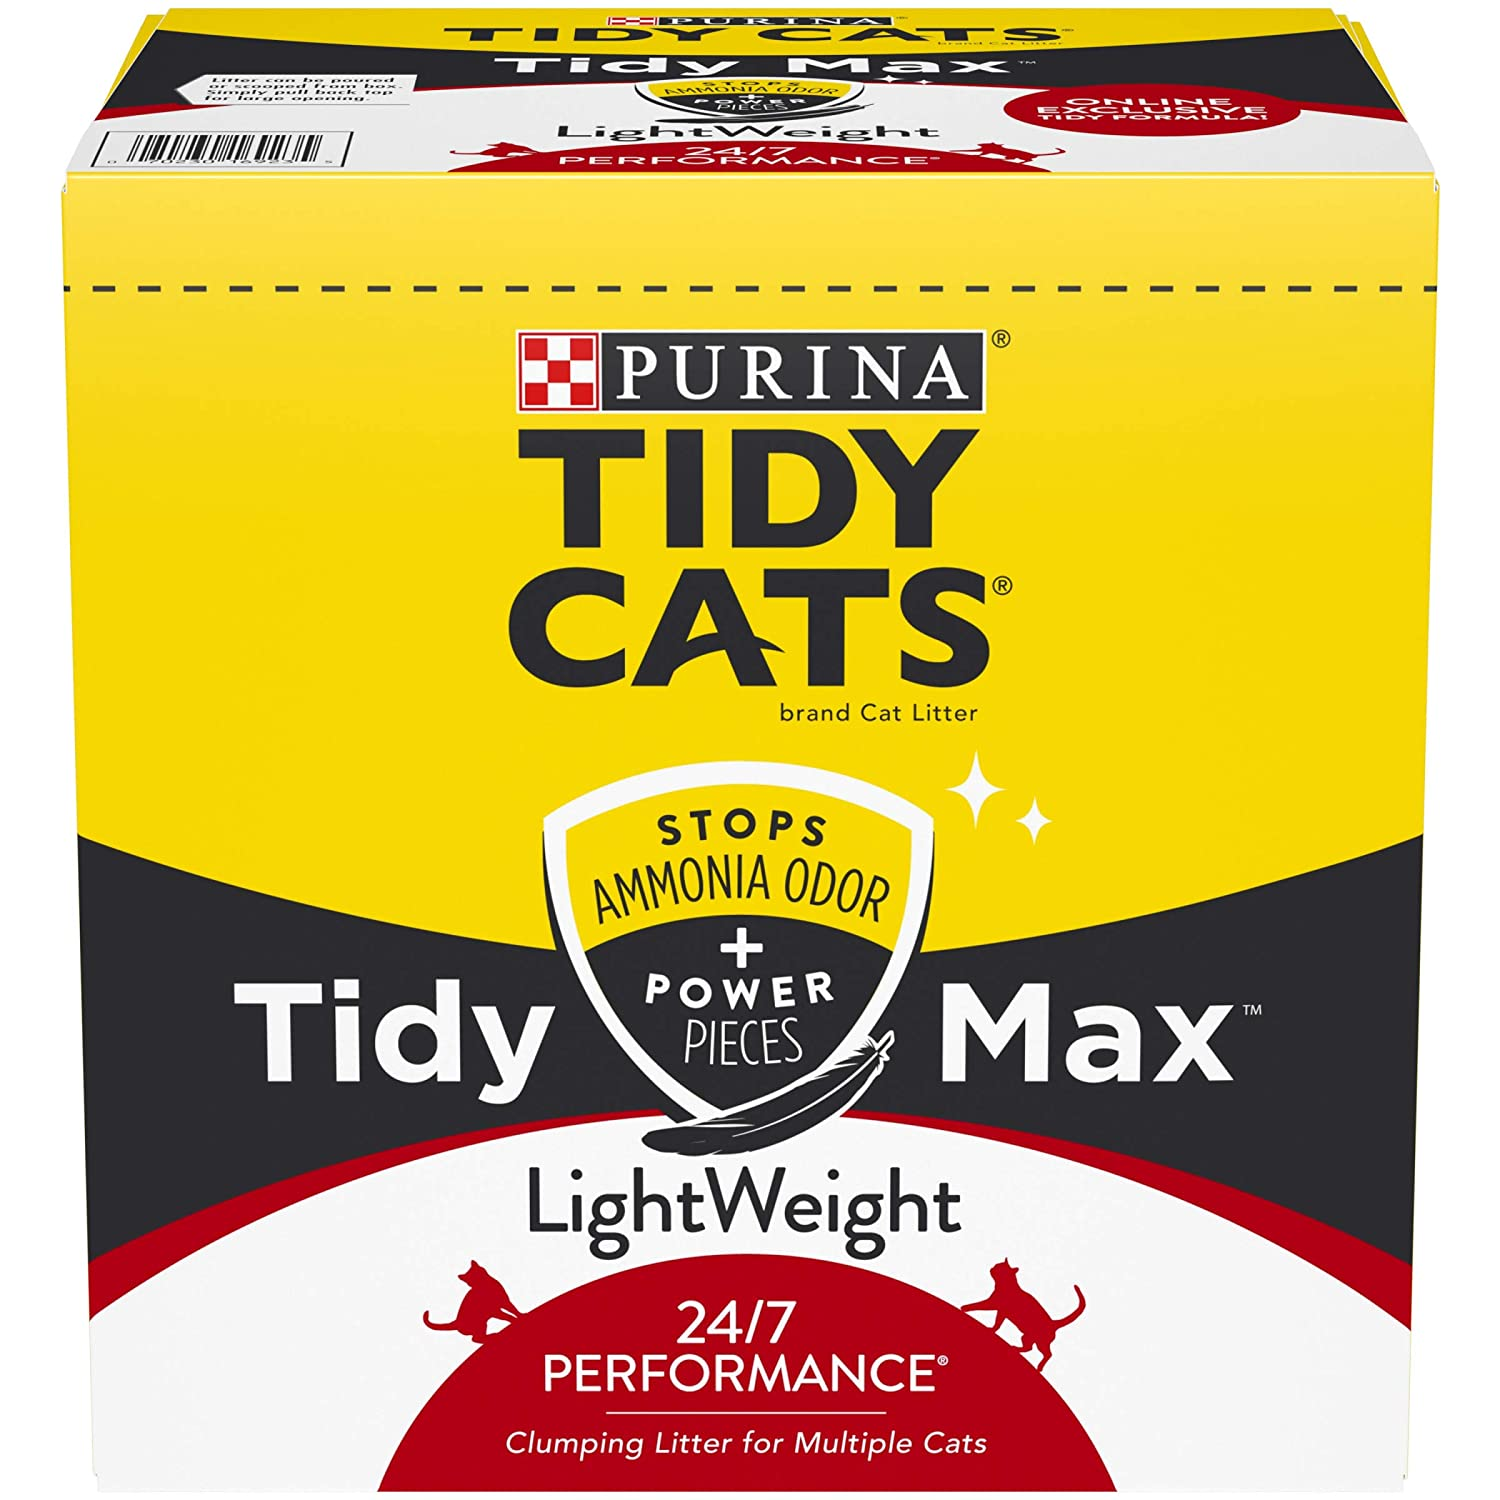 17 lb. Box Purina Tidy Cats Lightweight Clumping Cat Litter, Tidy Max 24 7 Performance Multi Cat Litter 17 lb. Box